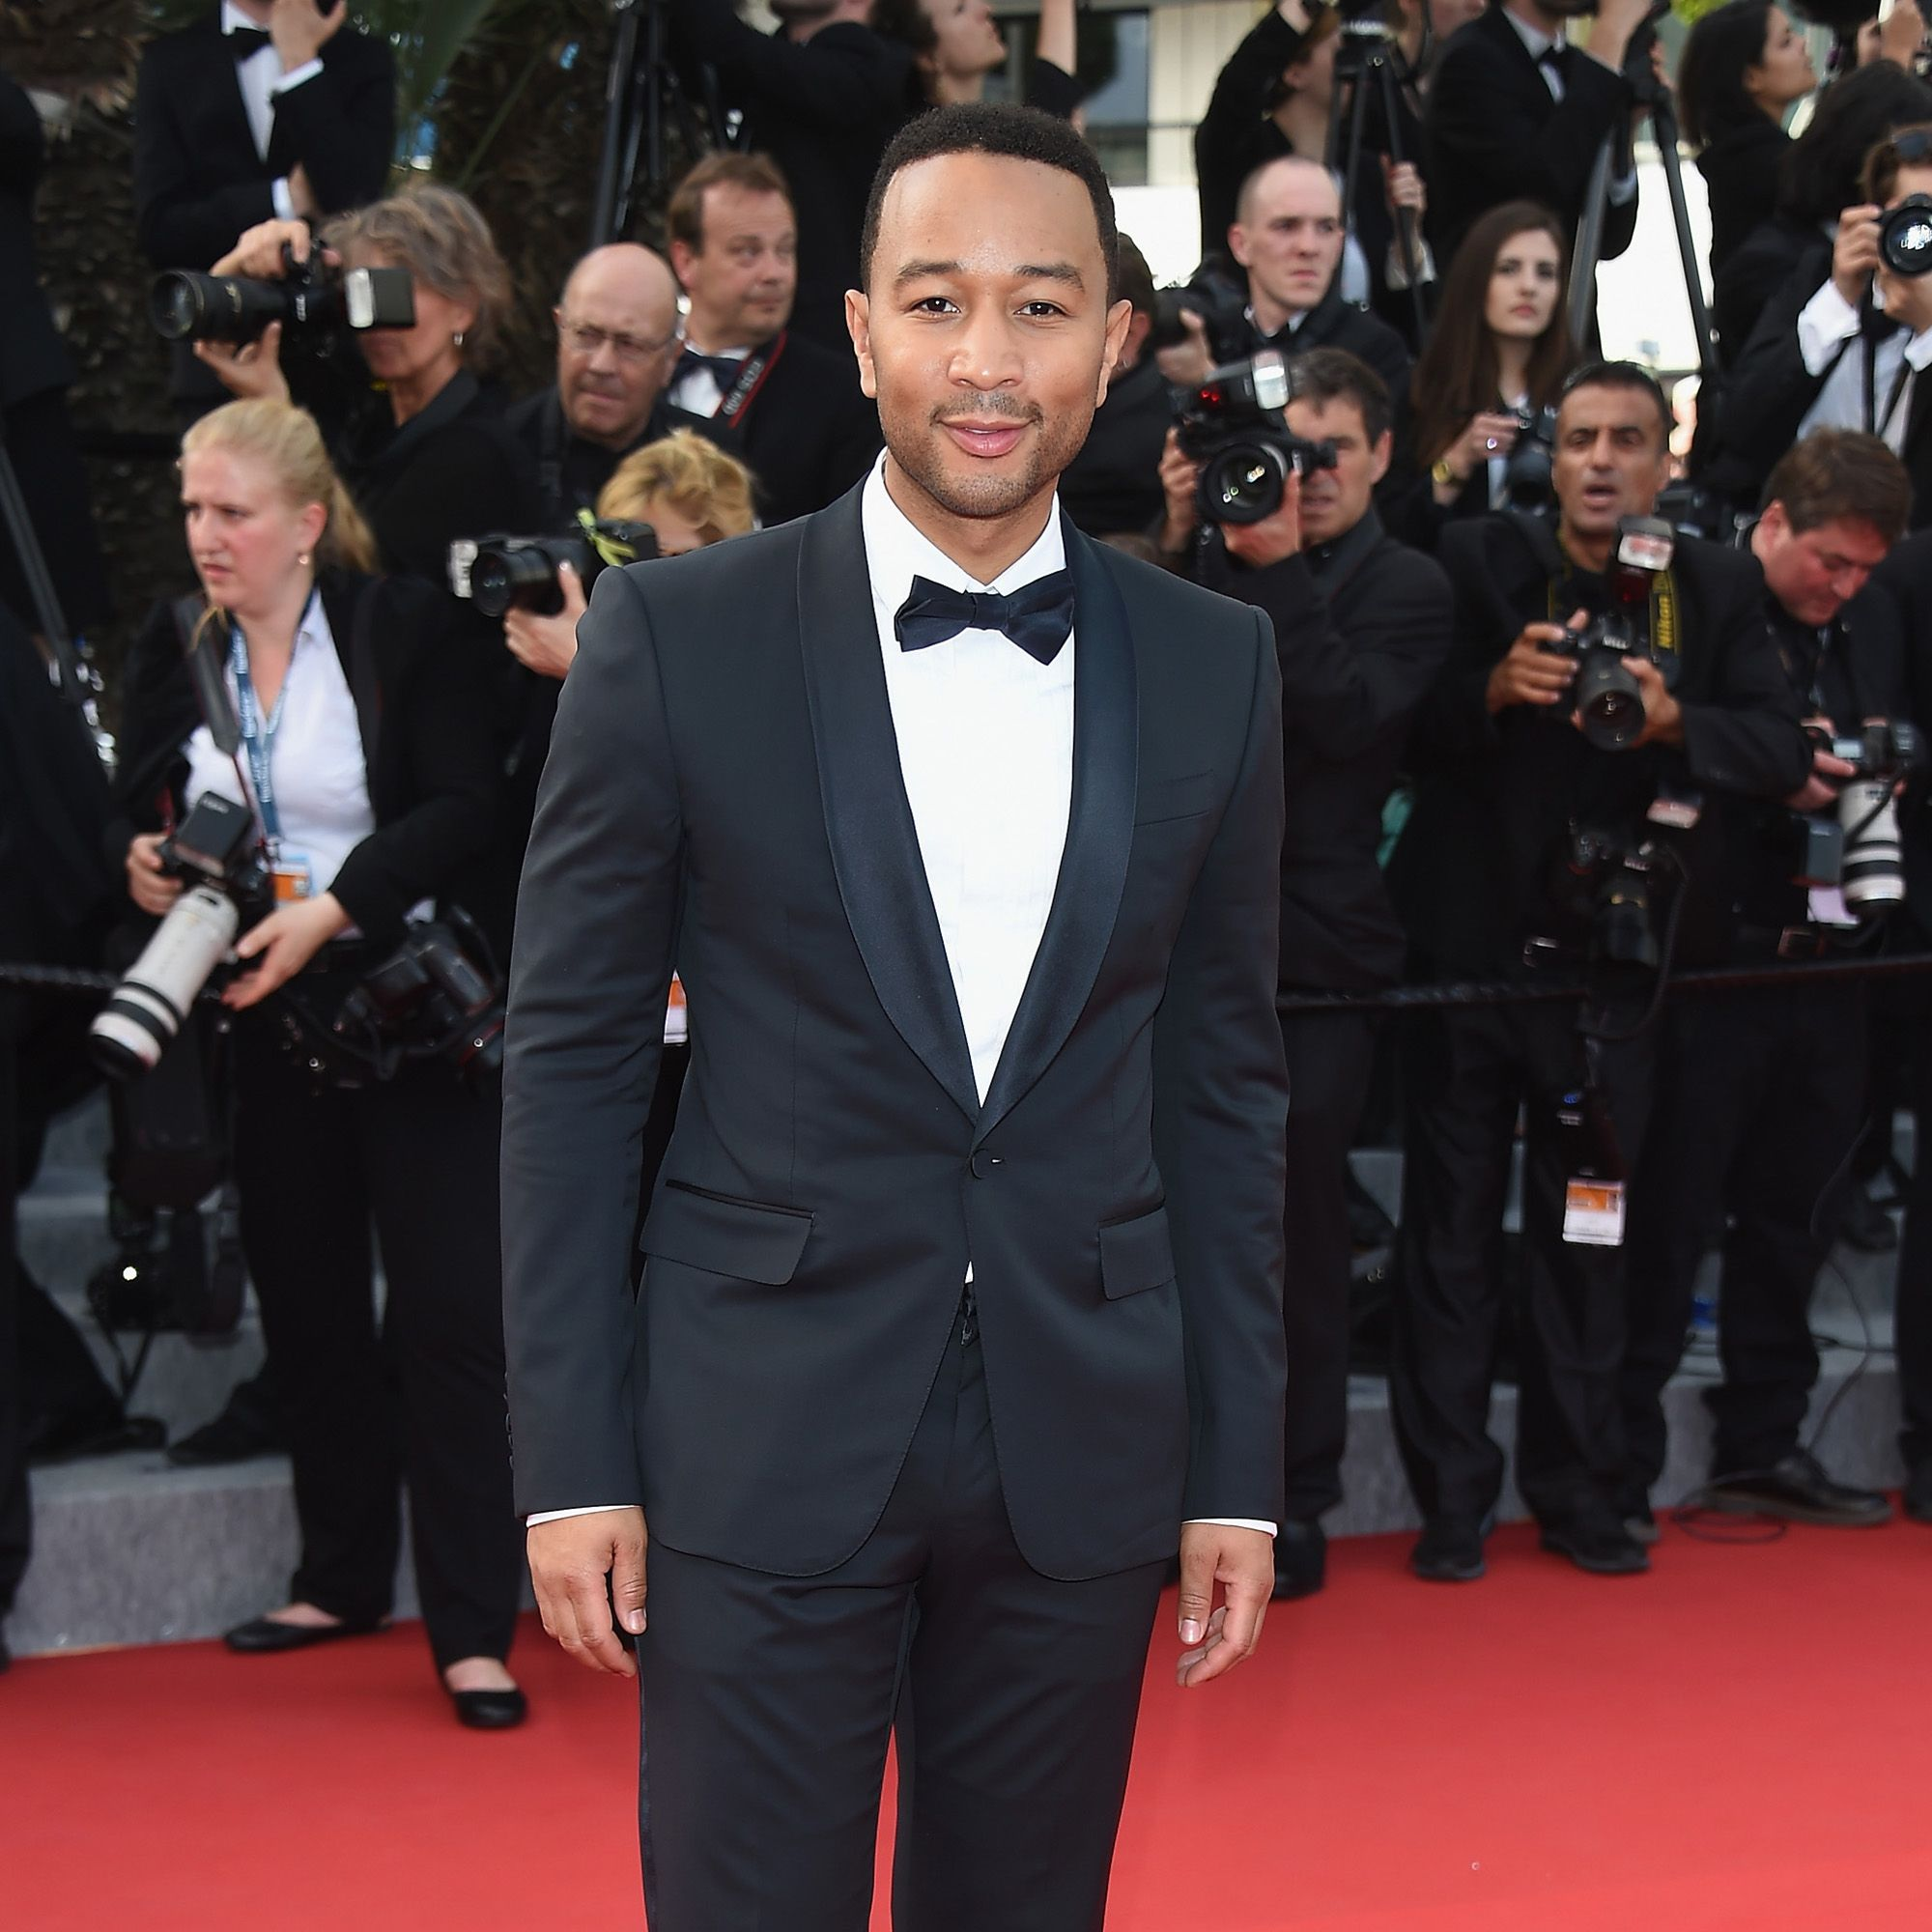 """CANNES, FRANCE - MAY 13:  Singer John Legend attends the opening ceremony and premiere of """"La Tete Haute (""""Standing Tall"""") during the 68th annual Cannes Film Festival on May 13, 2015 in Cannes, France.  (Photo by Venturelli/WireImage)"""